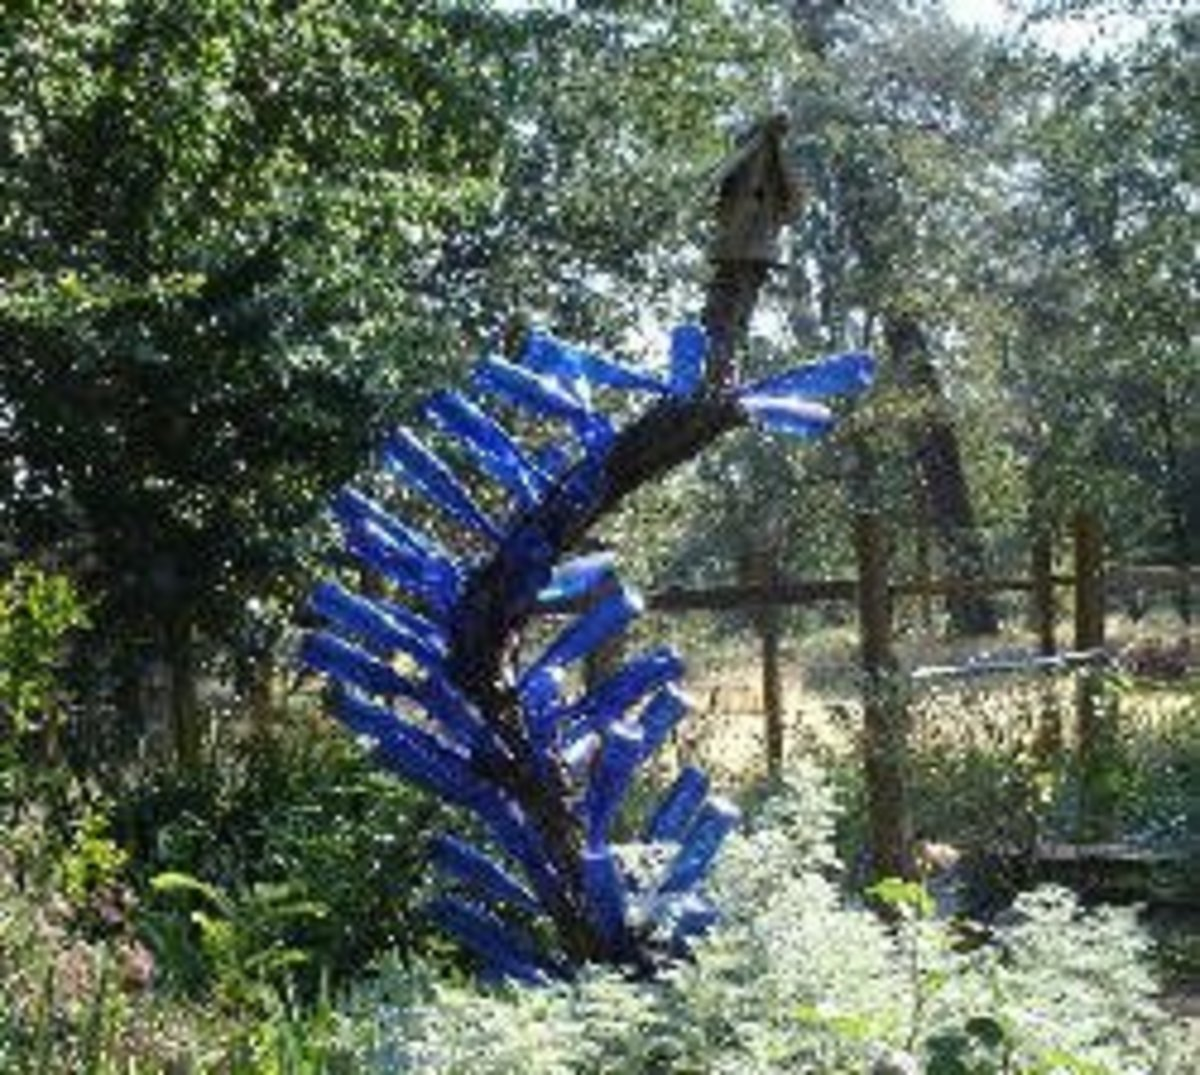 A really neat and unusual bottle tree.Note that it is made of the popular blue bottles.